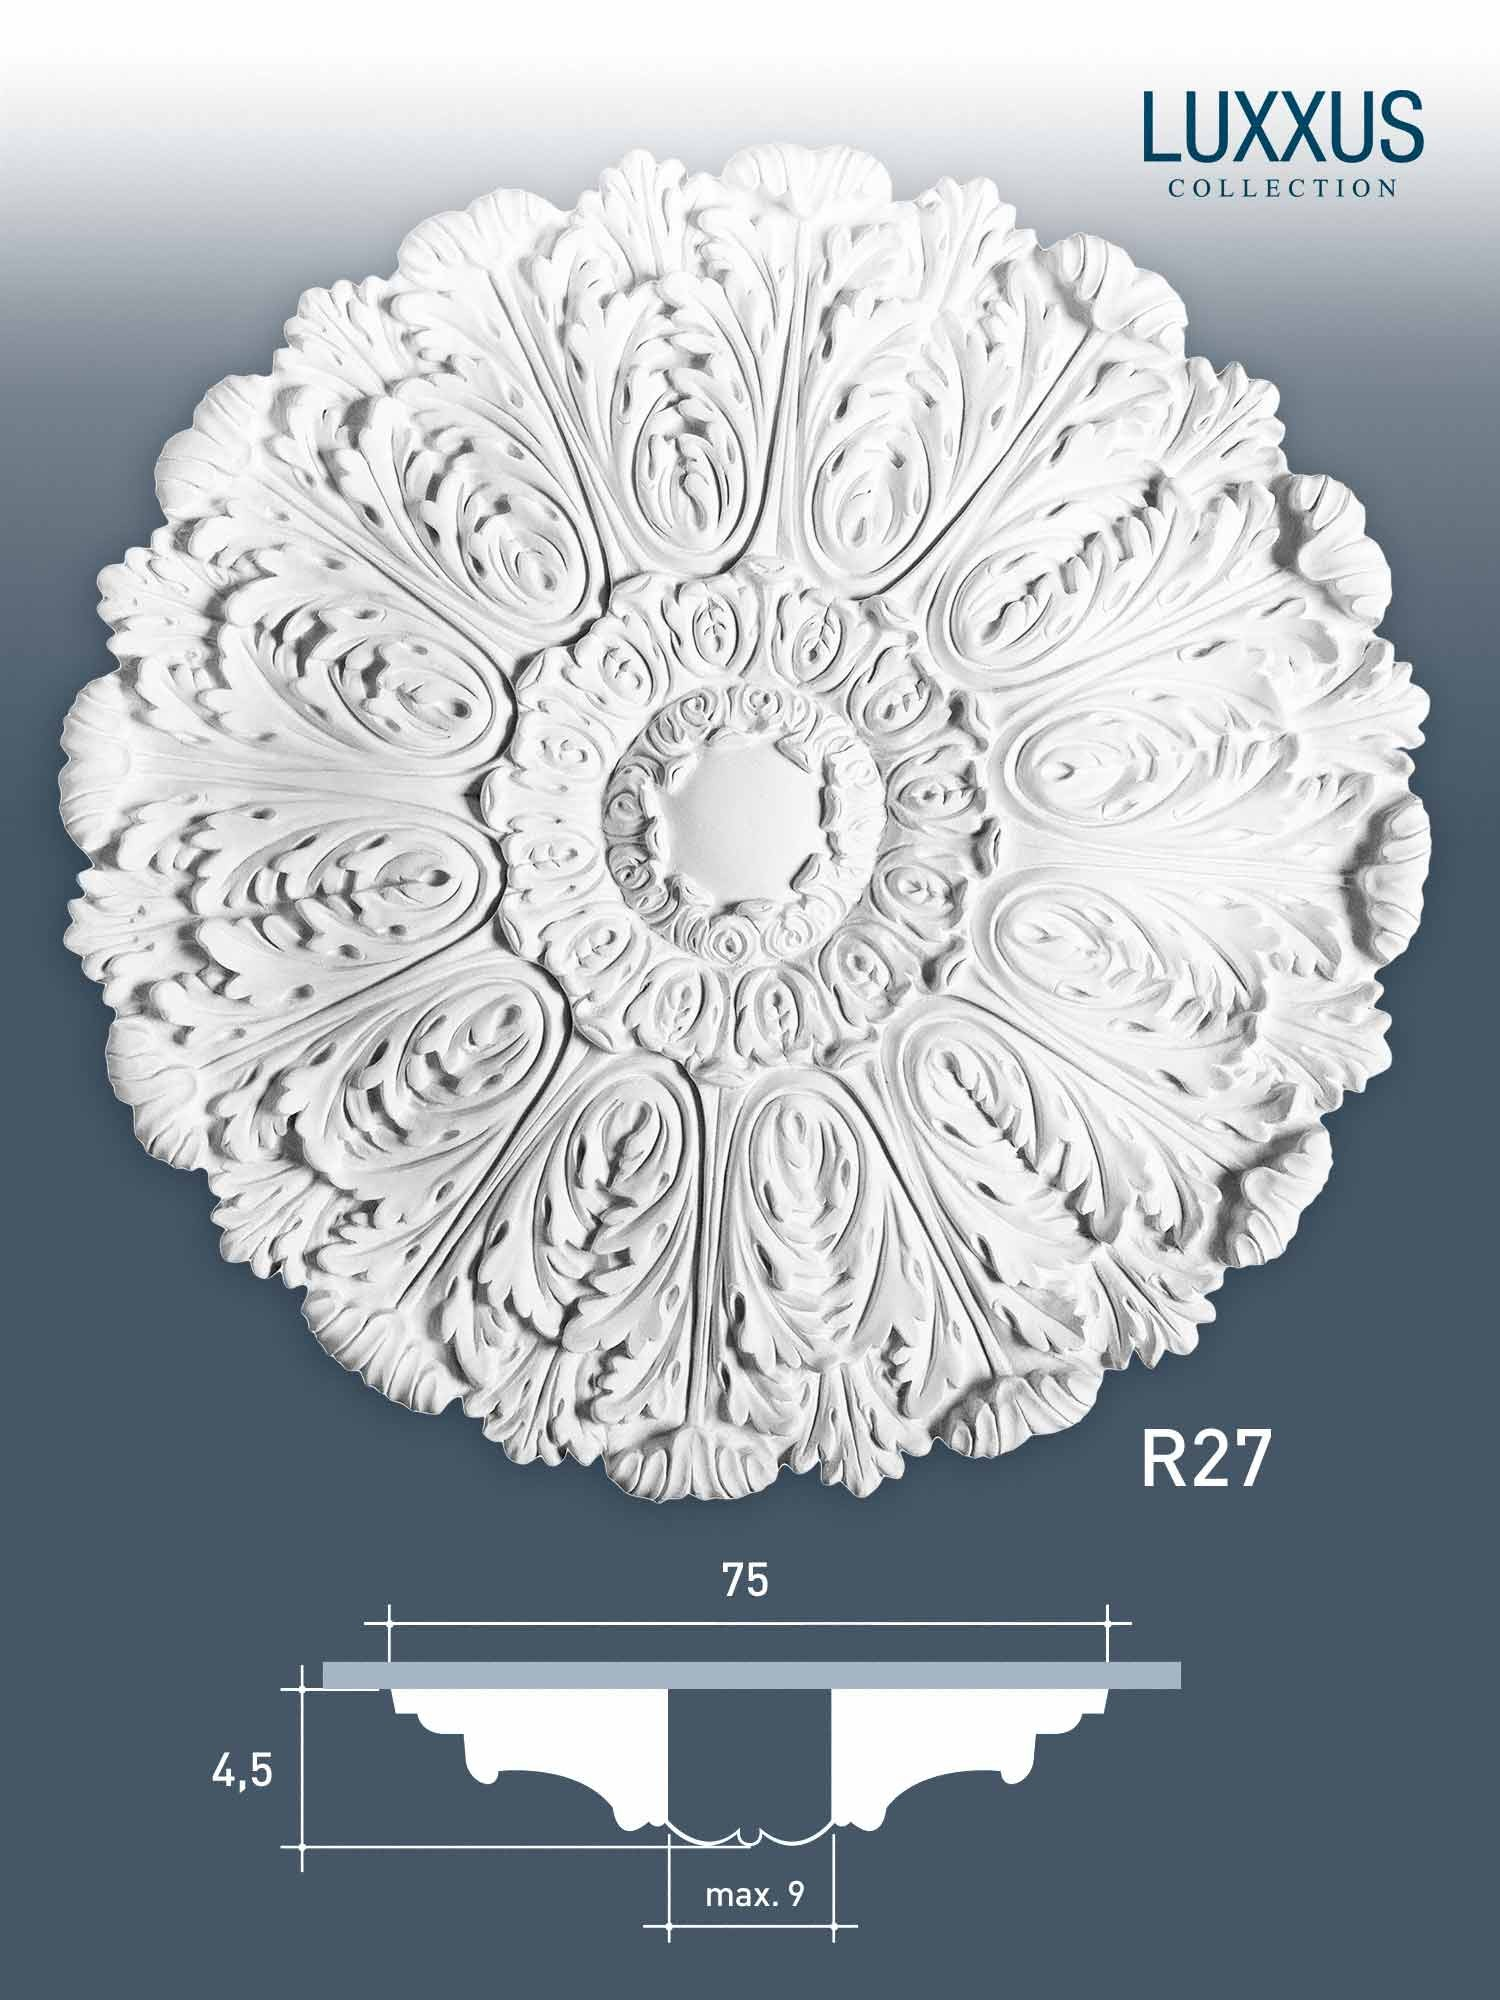 orac decor r27 luxxus deckenrosette stuck rosette akanthus blatt dekor 75 cm ebay. Black Bedroom Furniture Sets. Home Design Ideas